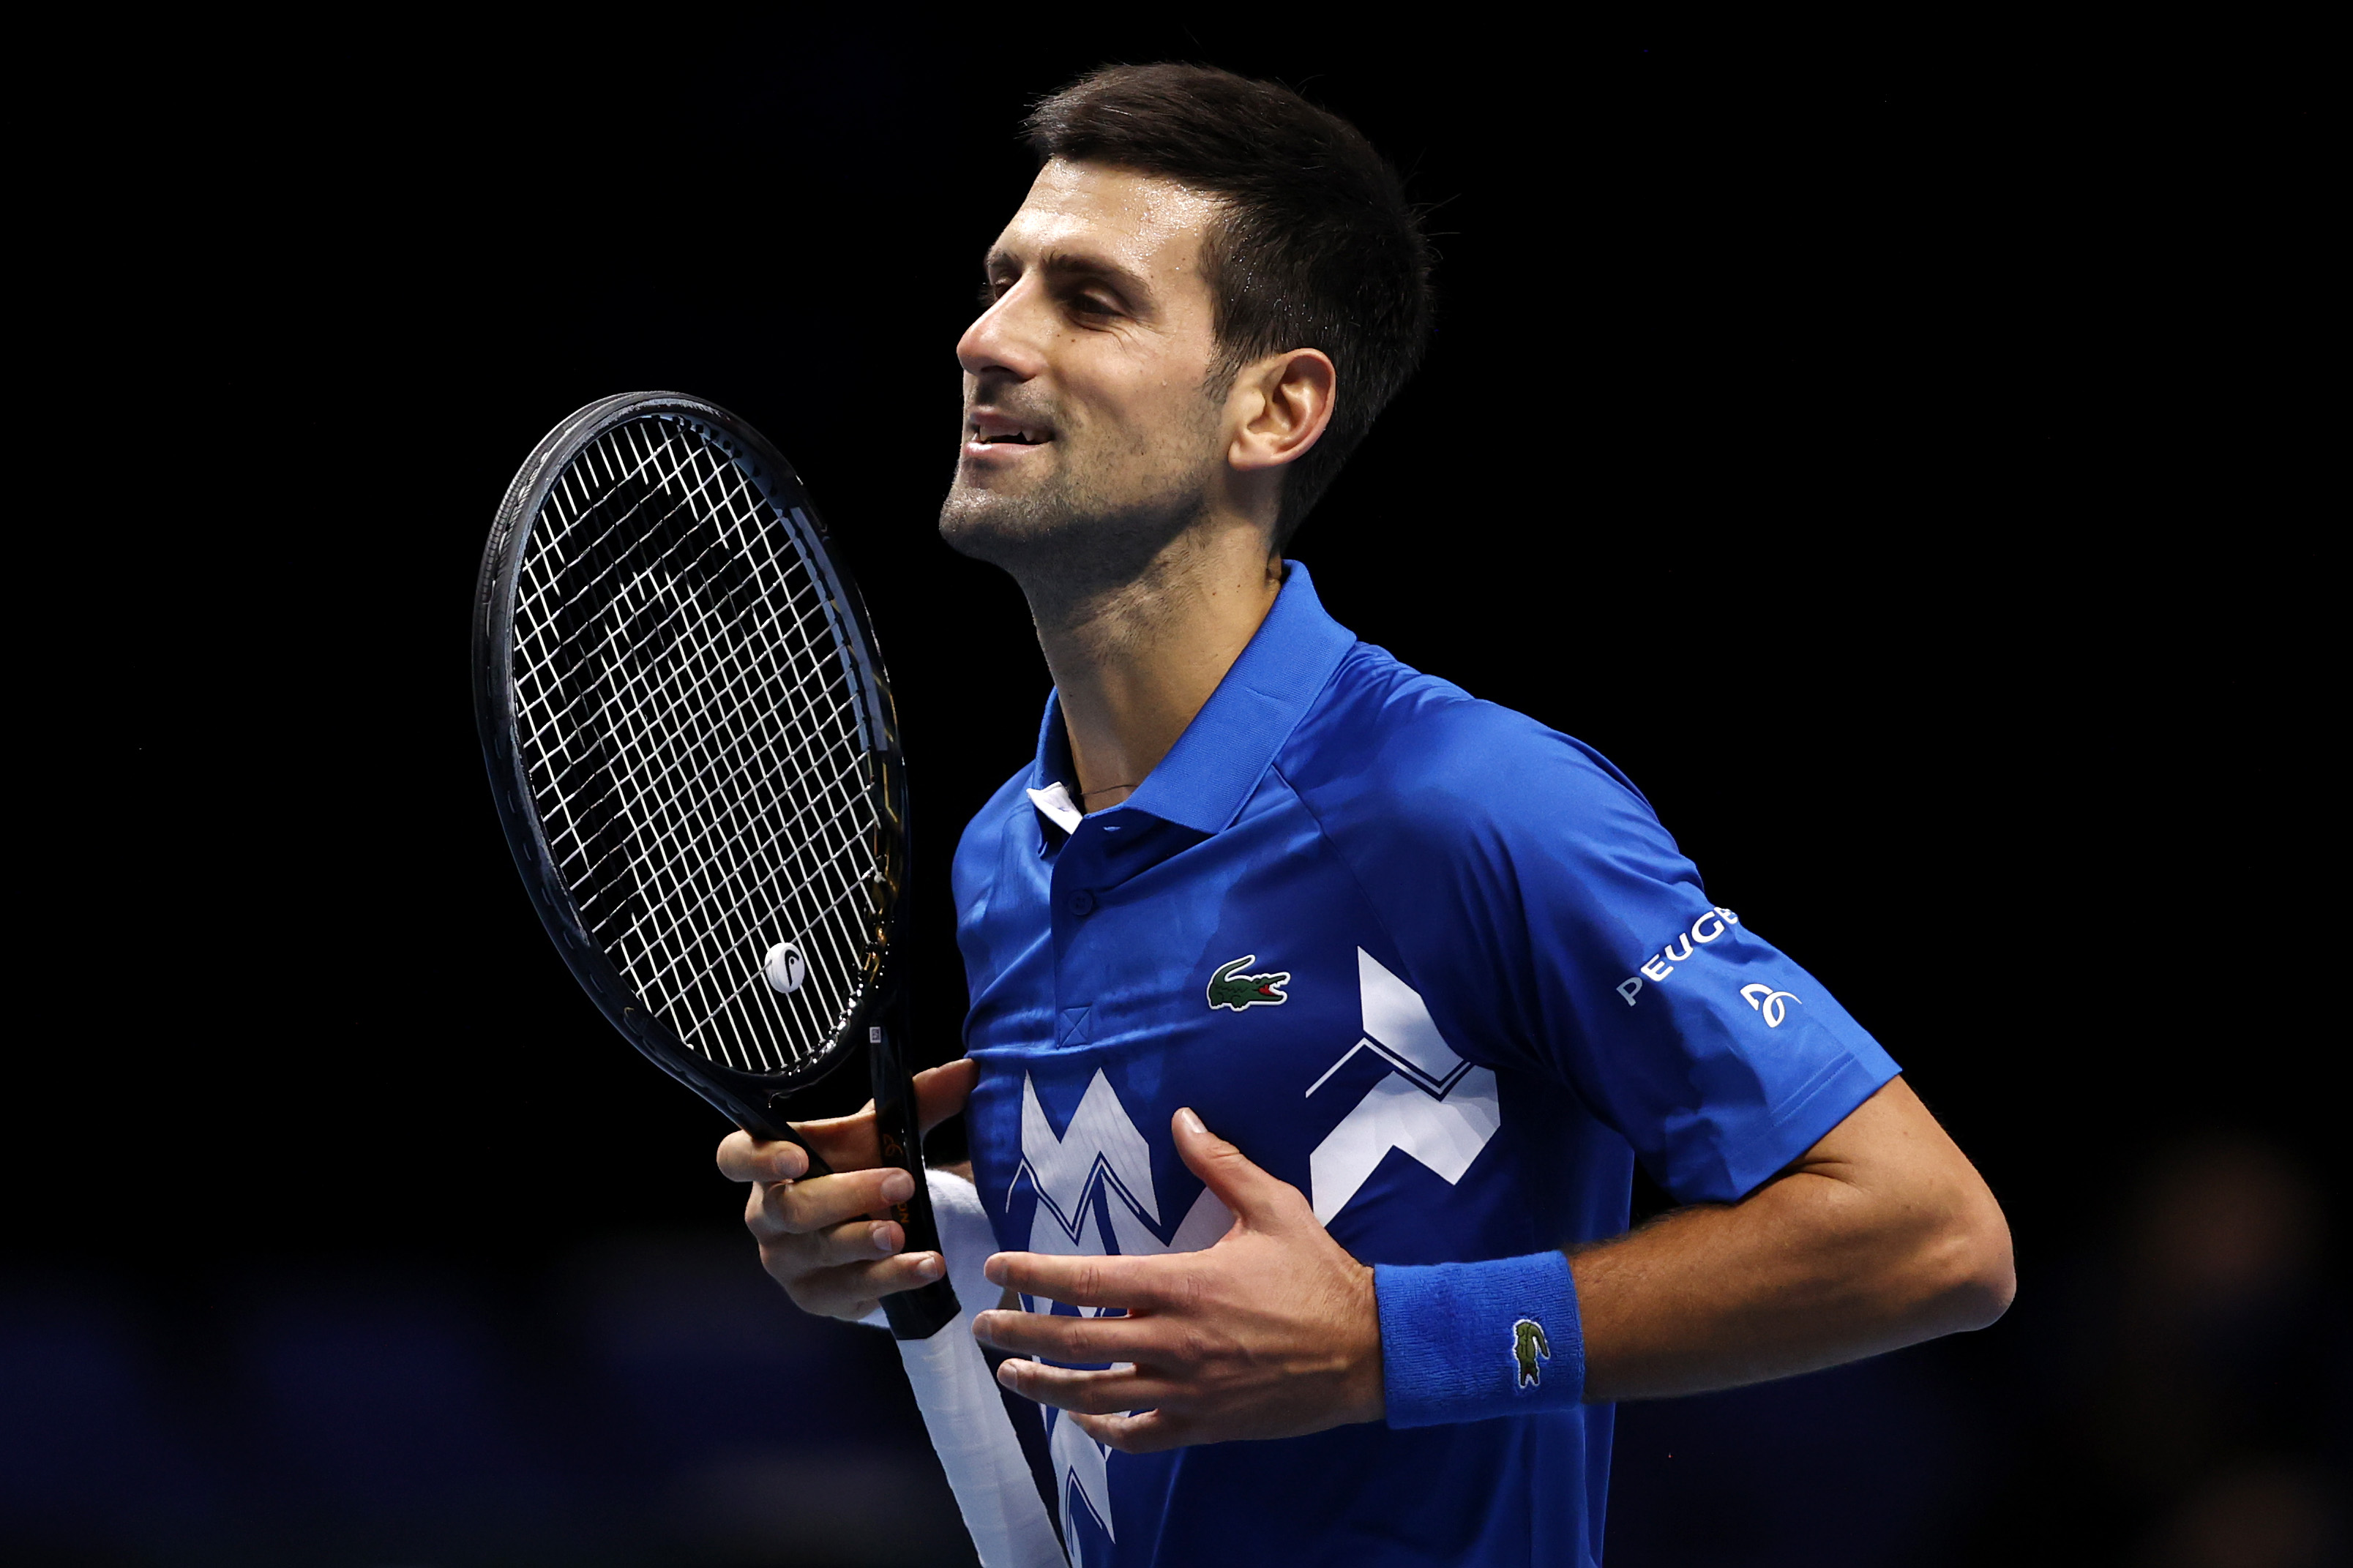 Novak Djokovic reaches semis of ATP Finals after victory against Alexander Zverev